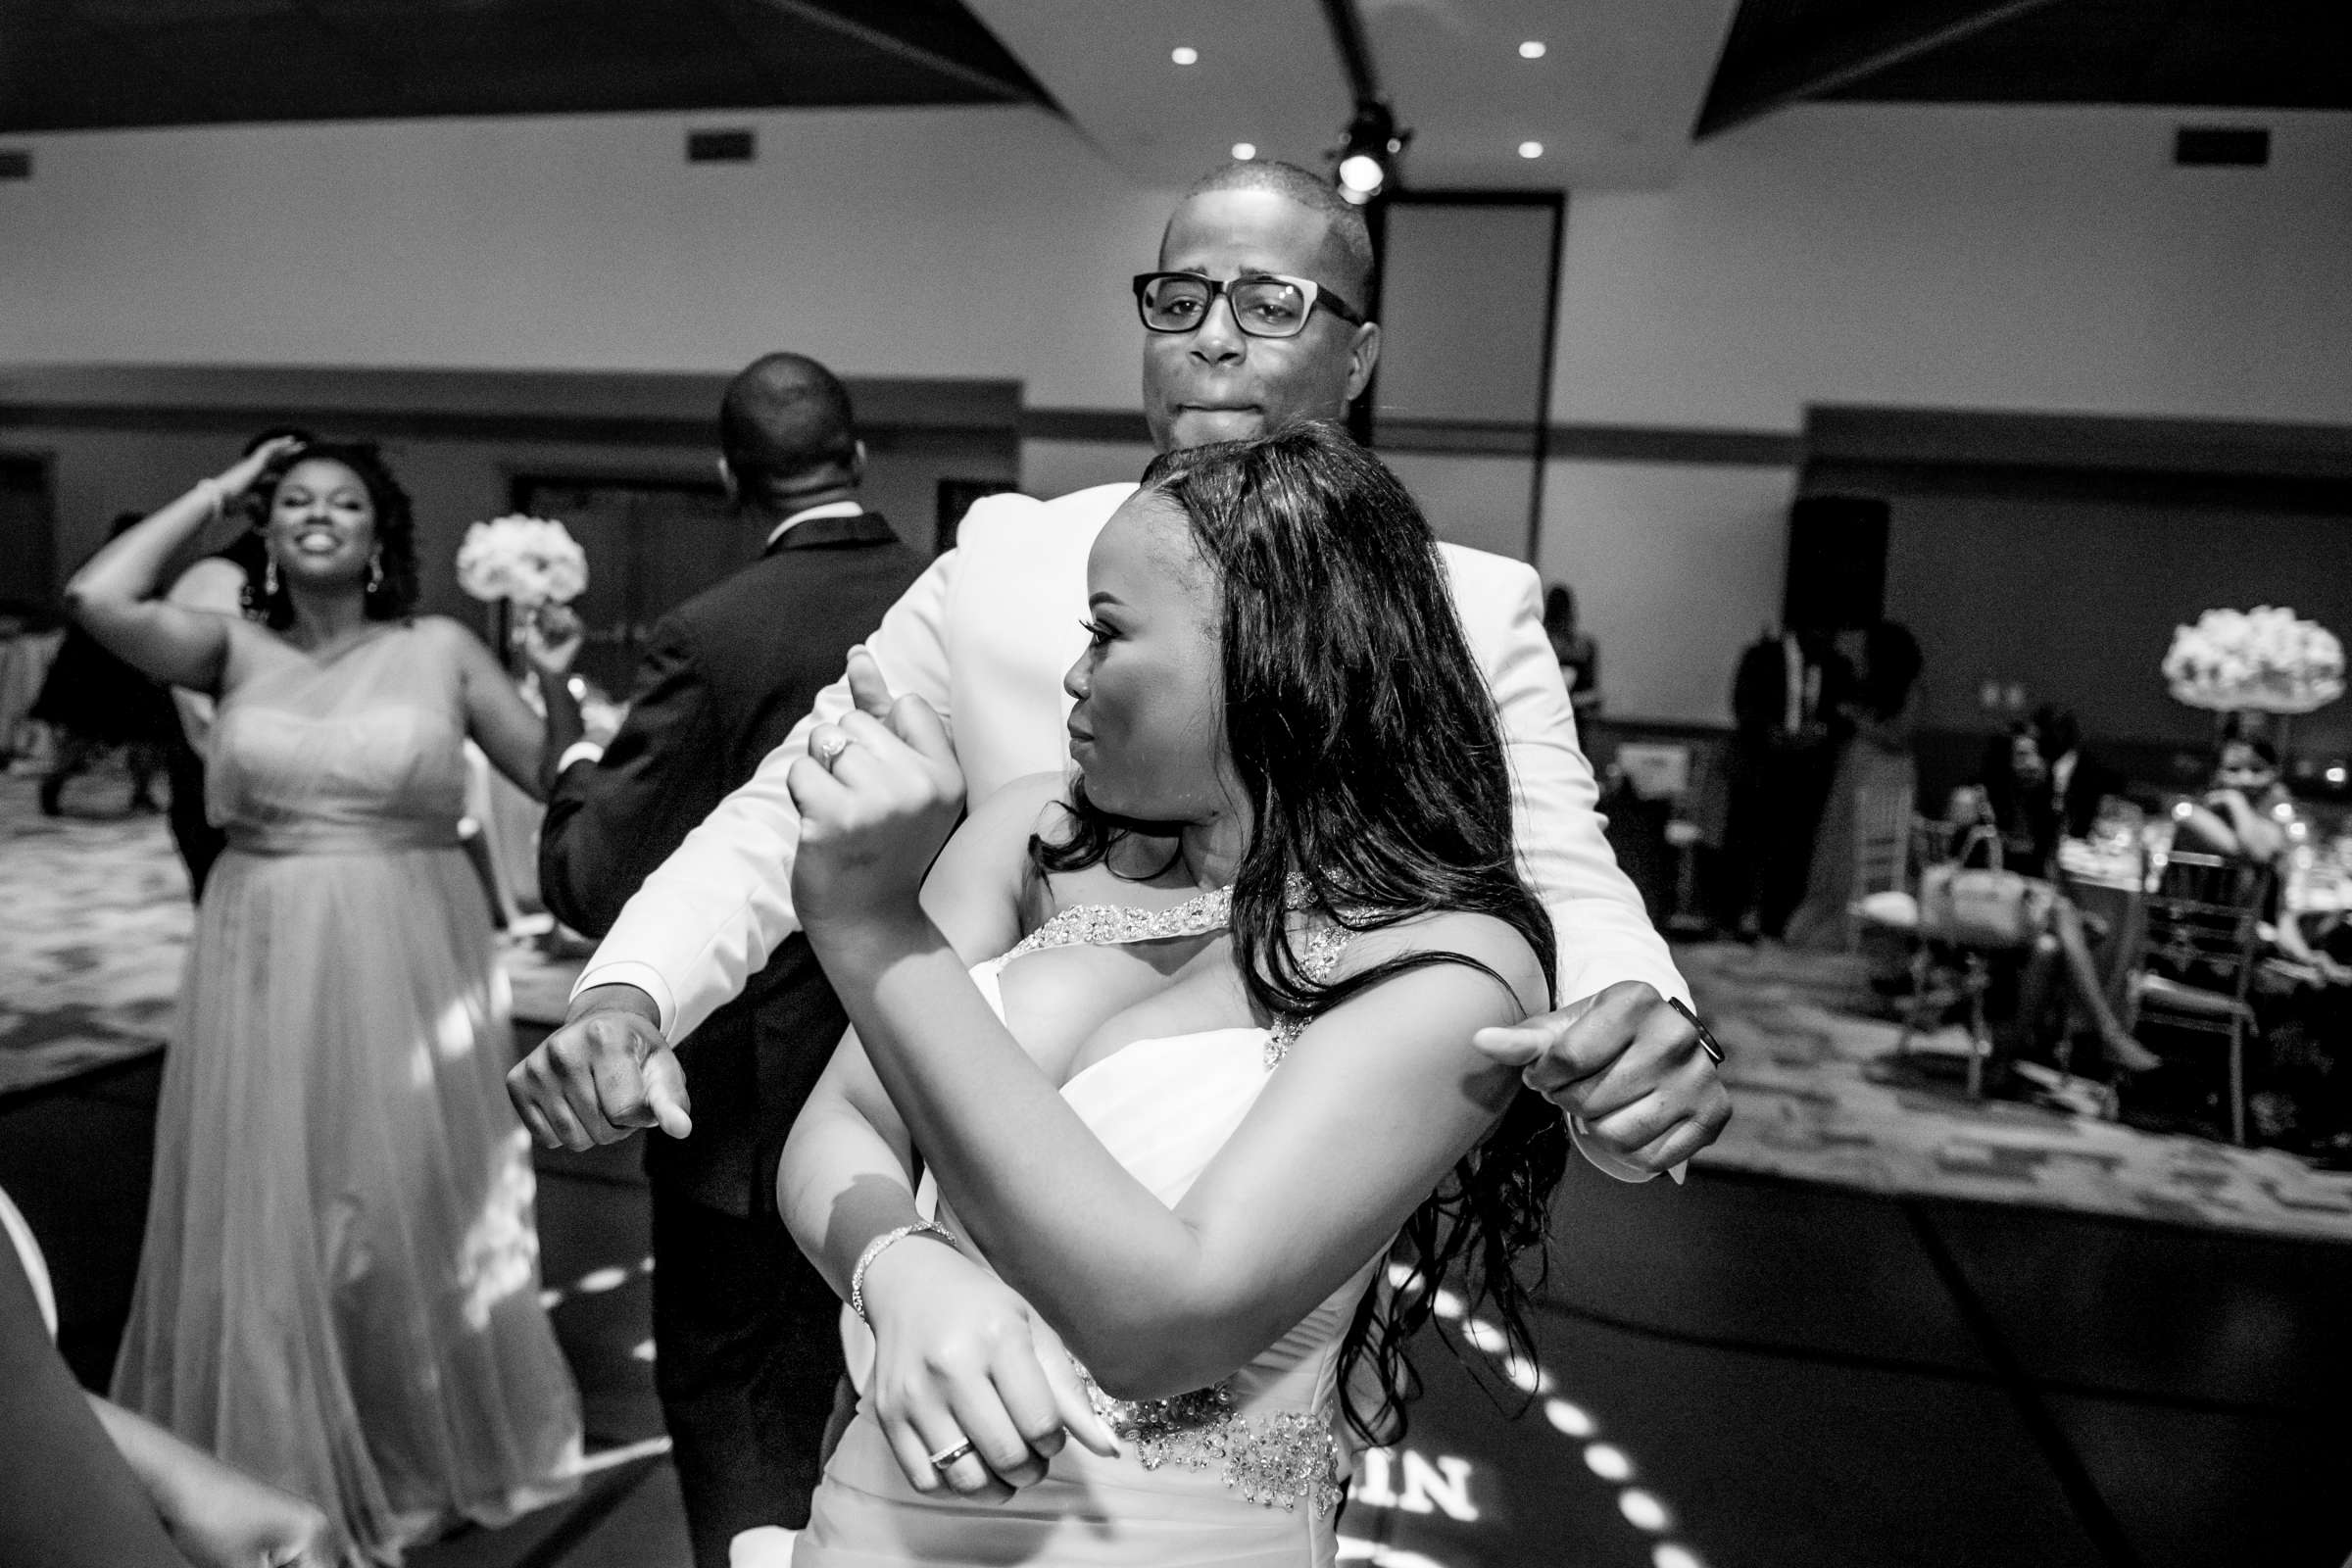 Coronado Community Center Wedding coordinated by First Comes Love Weddings & Events, Nikia and Charles Wedding Photo #84 by True Photography